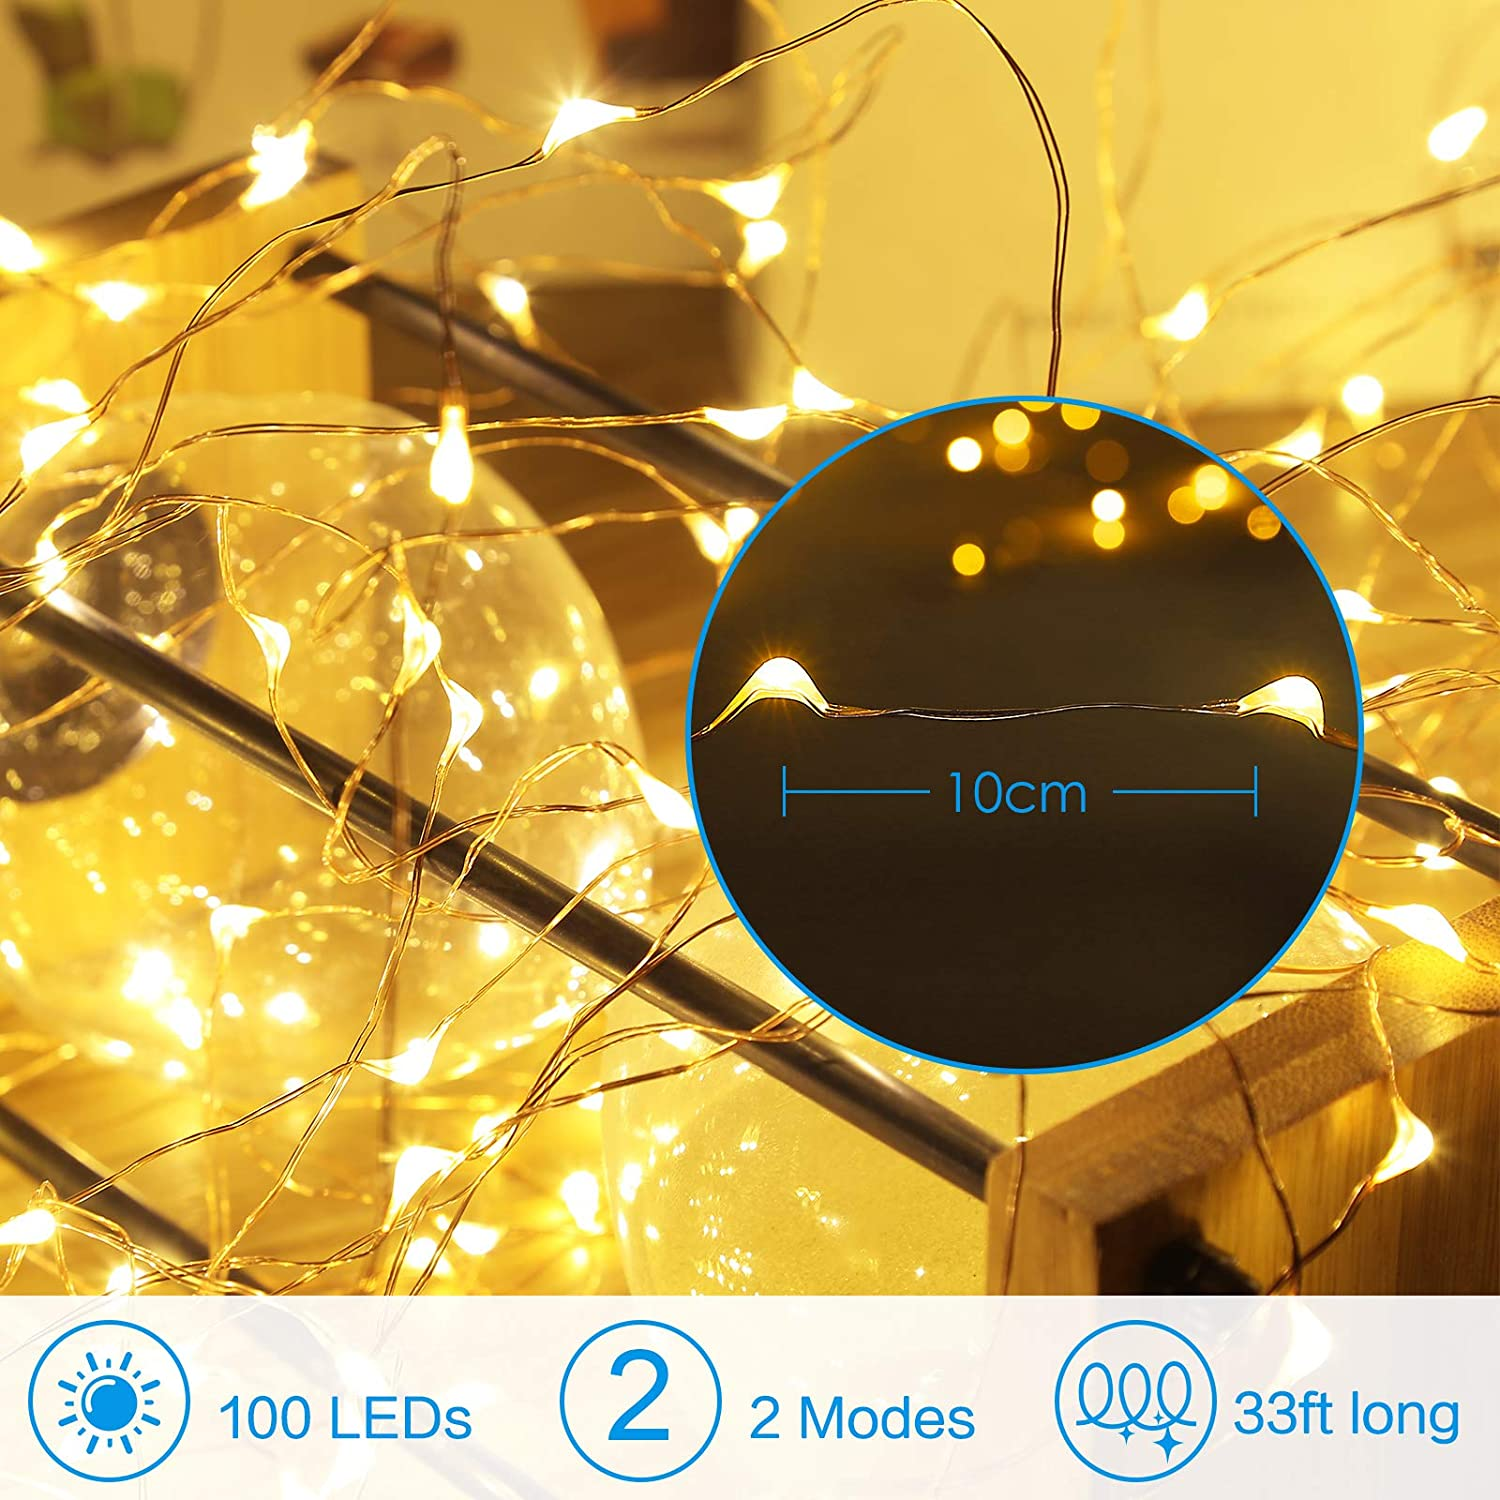 Hd361ae9f70d8422db9d41796cbcba985e - Led Fairy Lights Copper Wire String 1/2/5/10M Holiday Outdoor Lamp Garland Luces For Christmas Tree Wedding Party Decoration